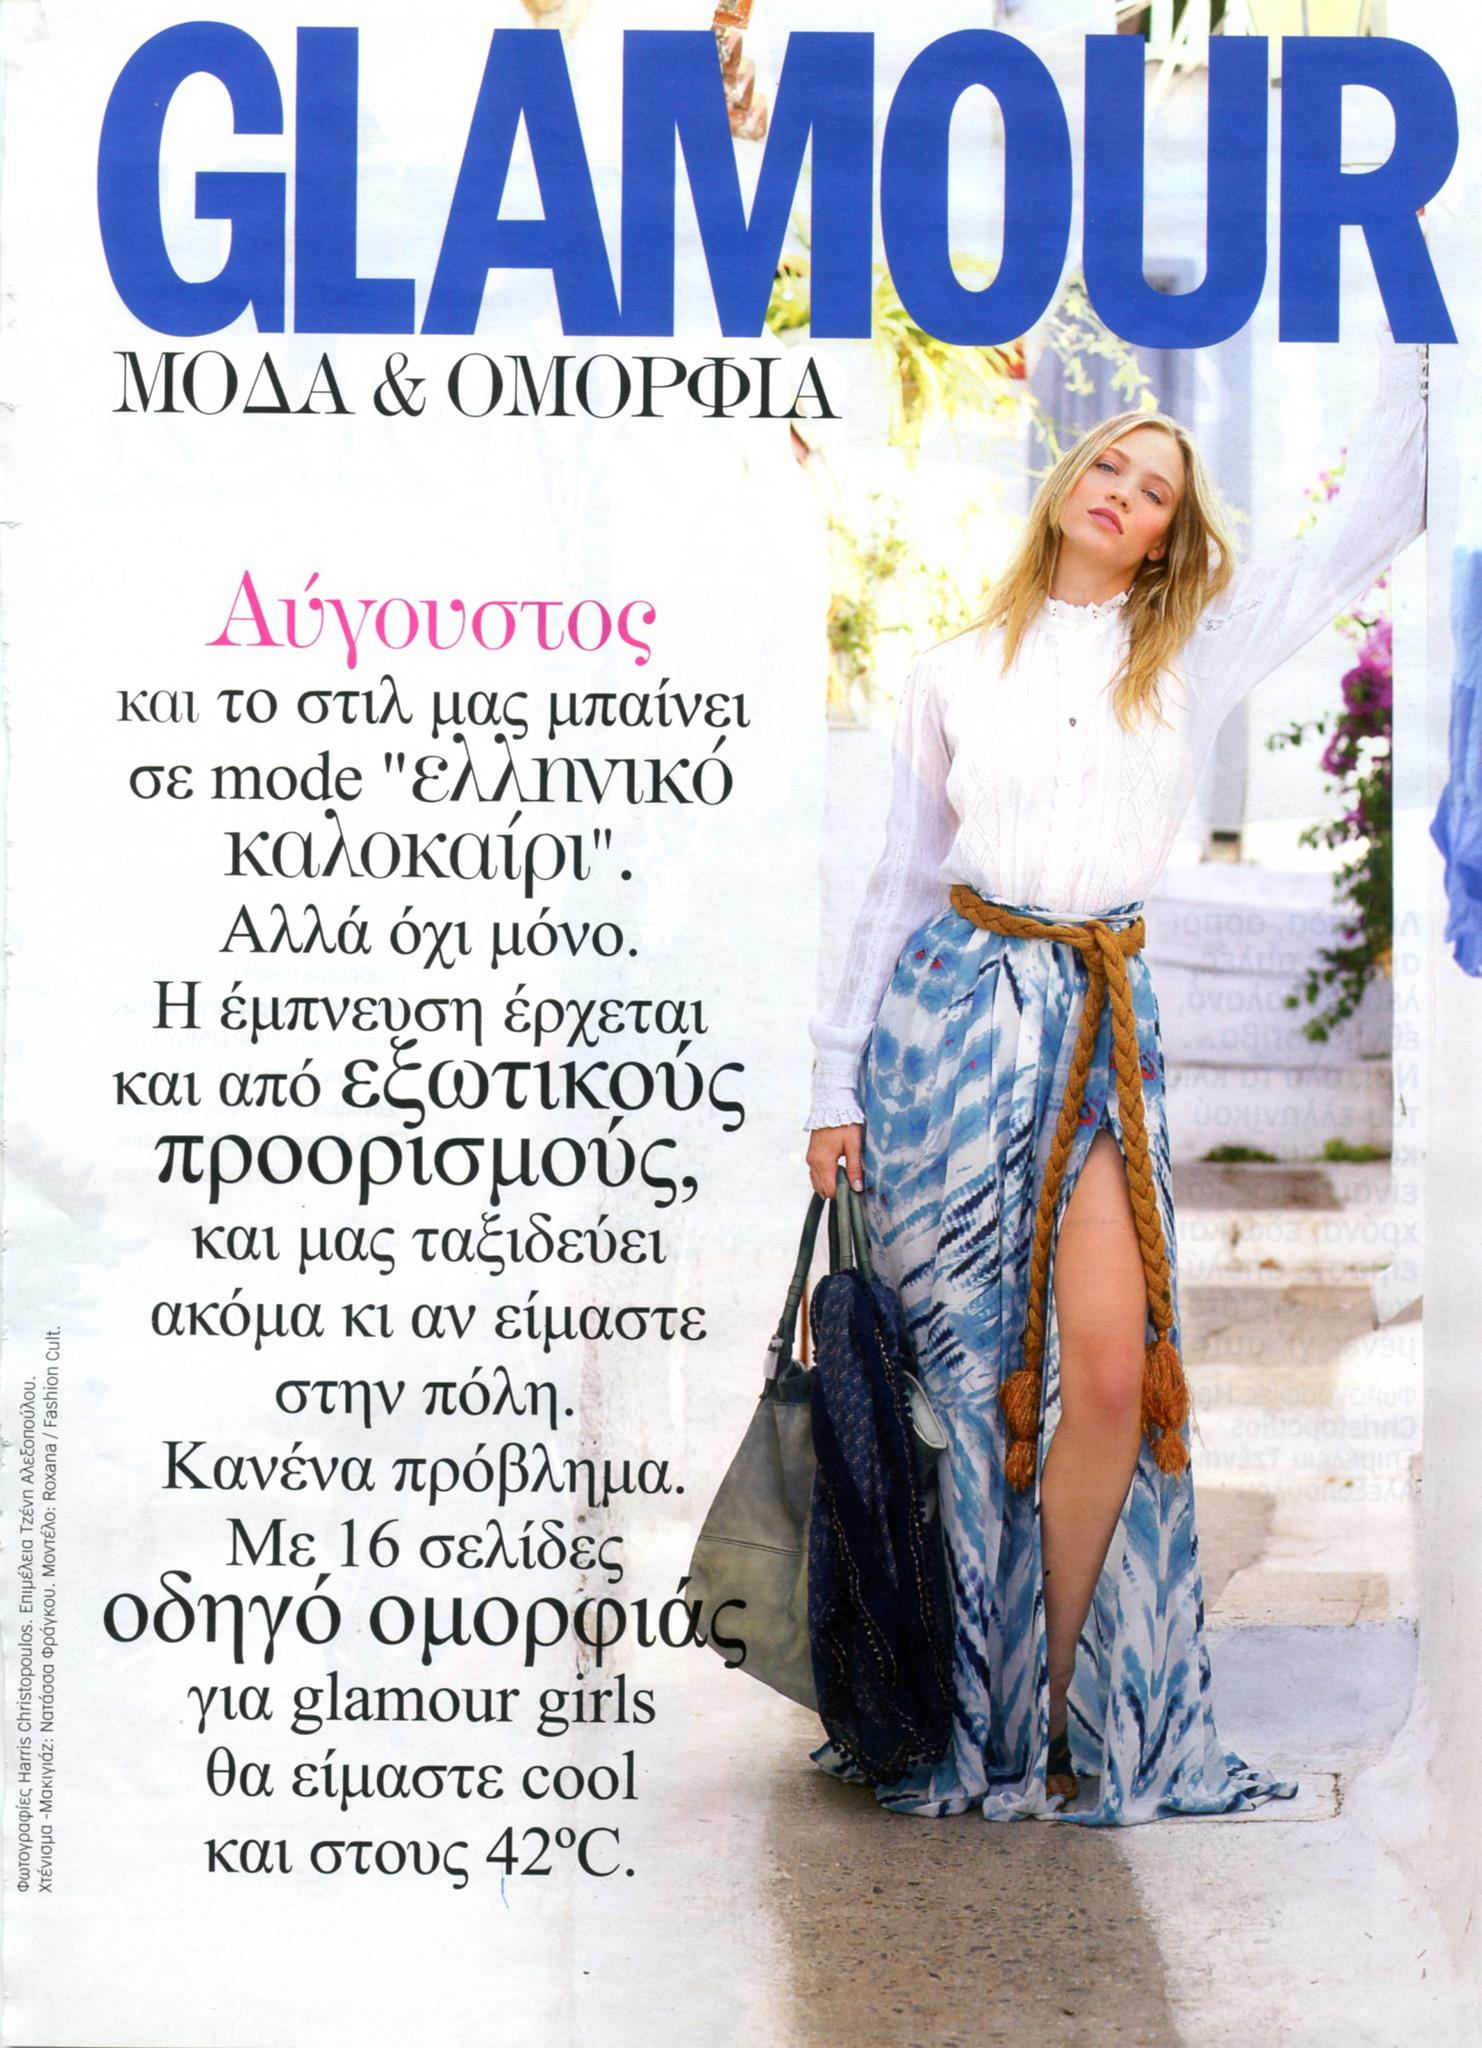 Glamour Magazine, Greece